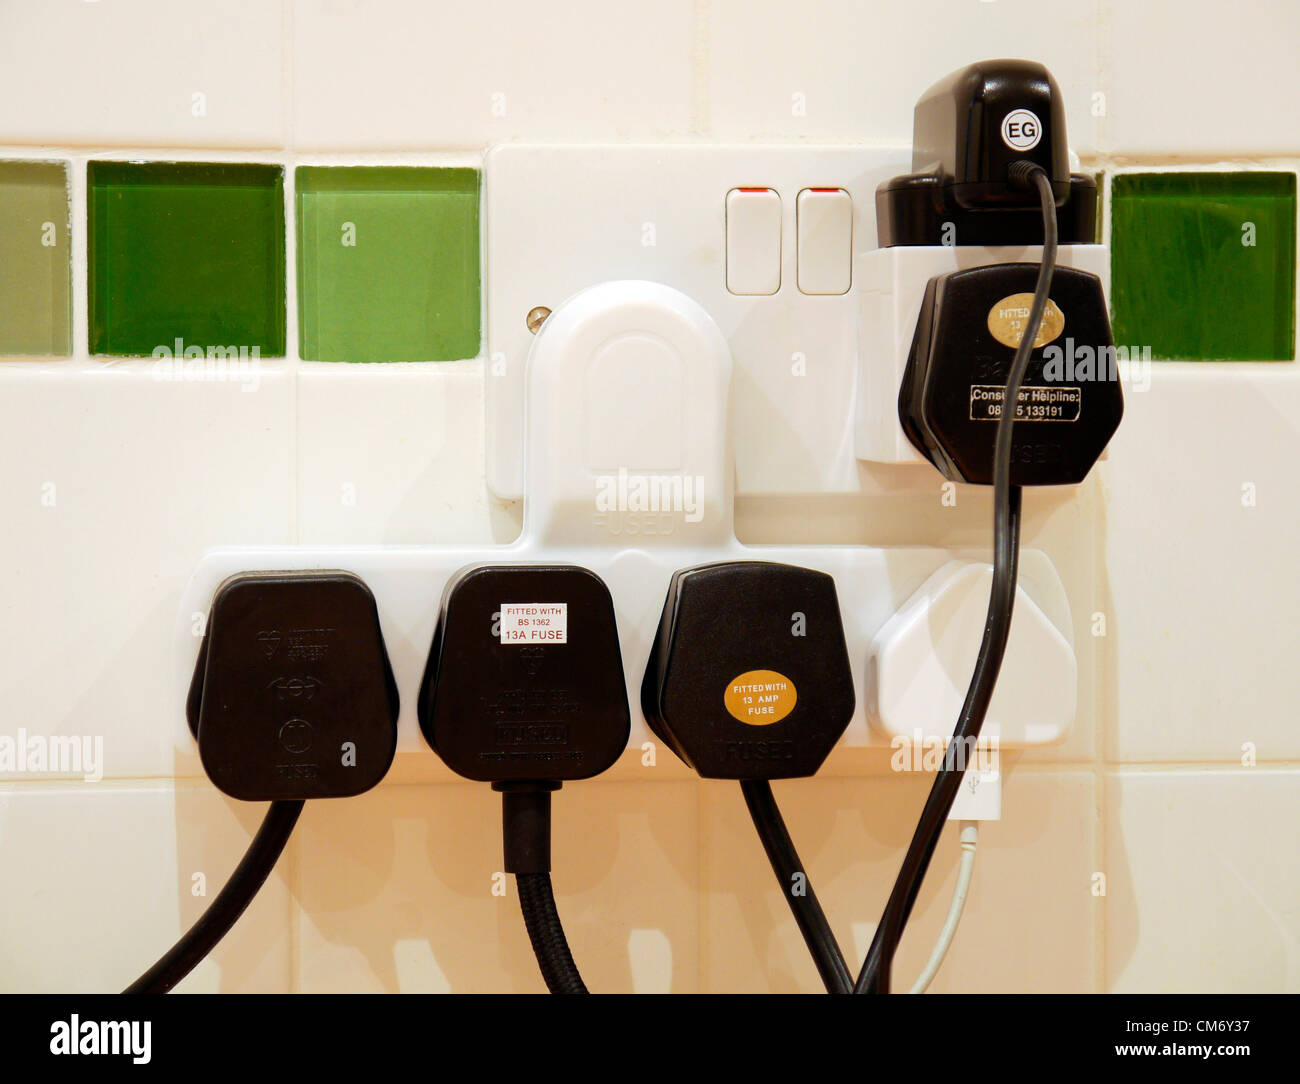 Plug Socket Fire Stock Photos Images Alamy Double Receptacle Wiring An Overloaded Using A Lot Of Electricity Image